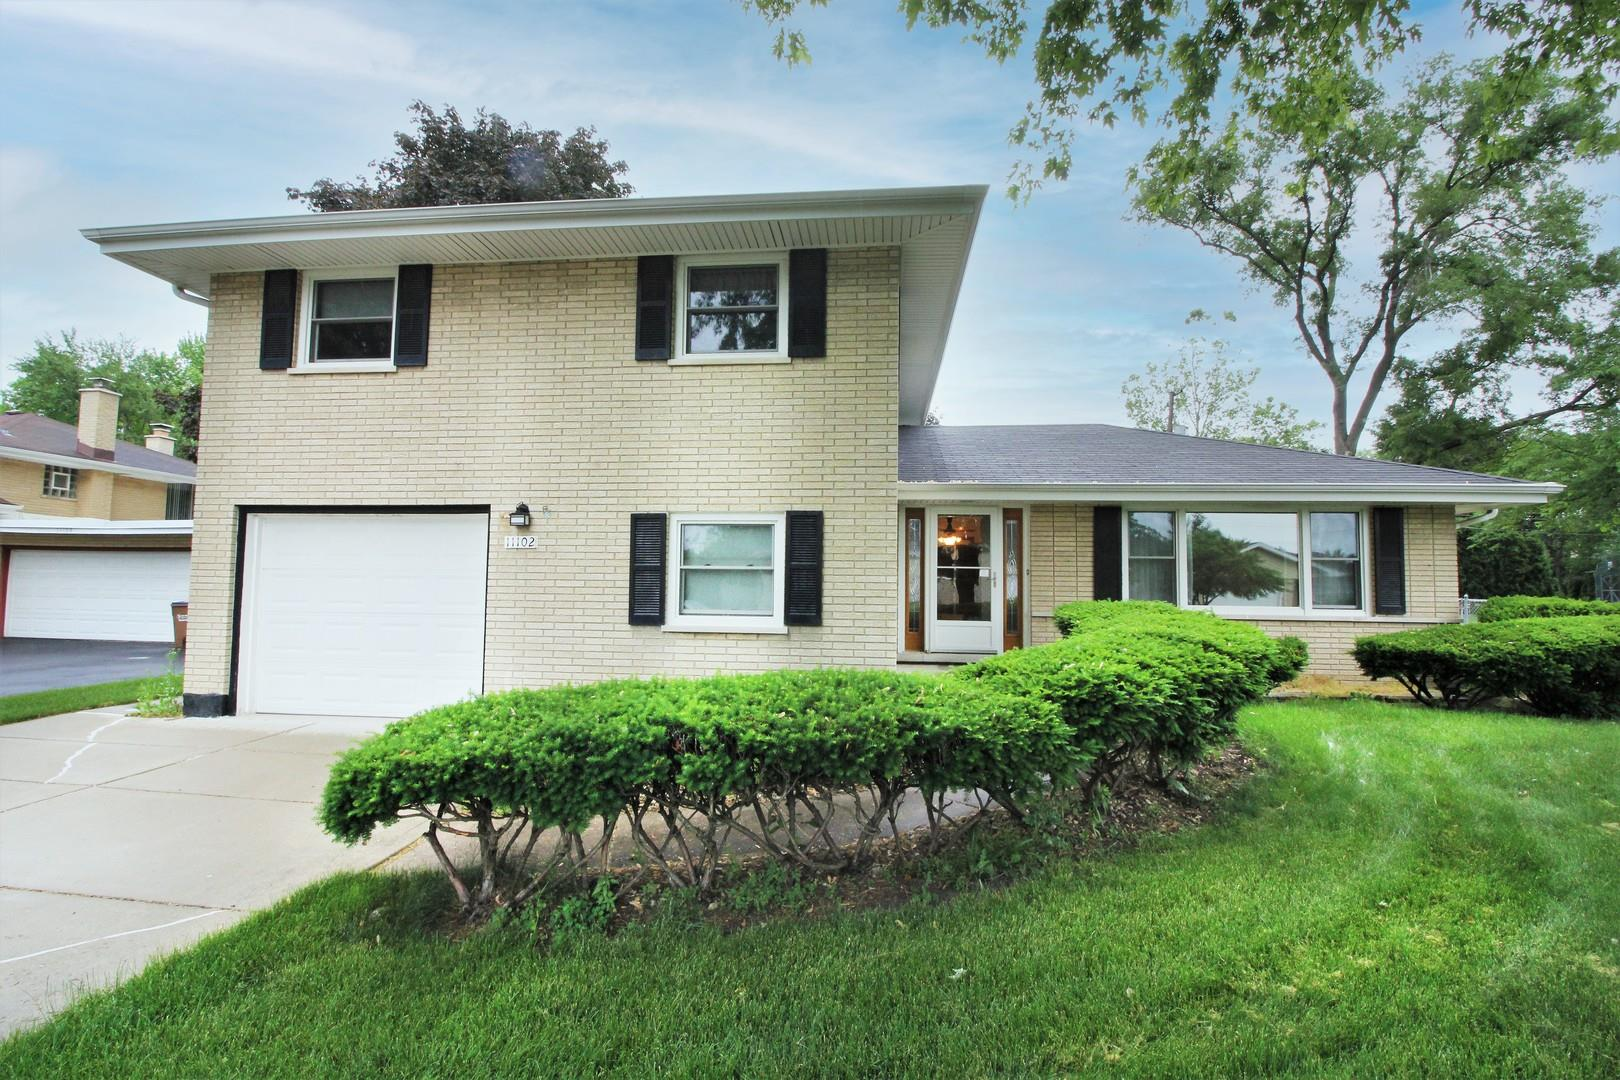 11102 84th Place, Willow Springs, IL 60480 - #: 11119246